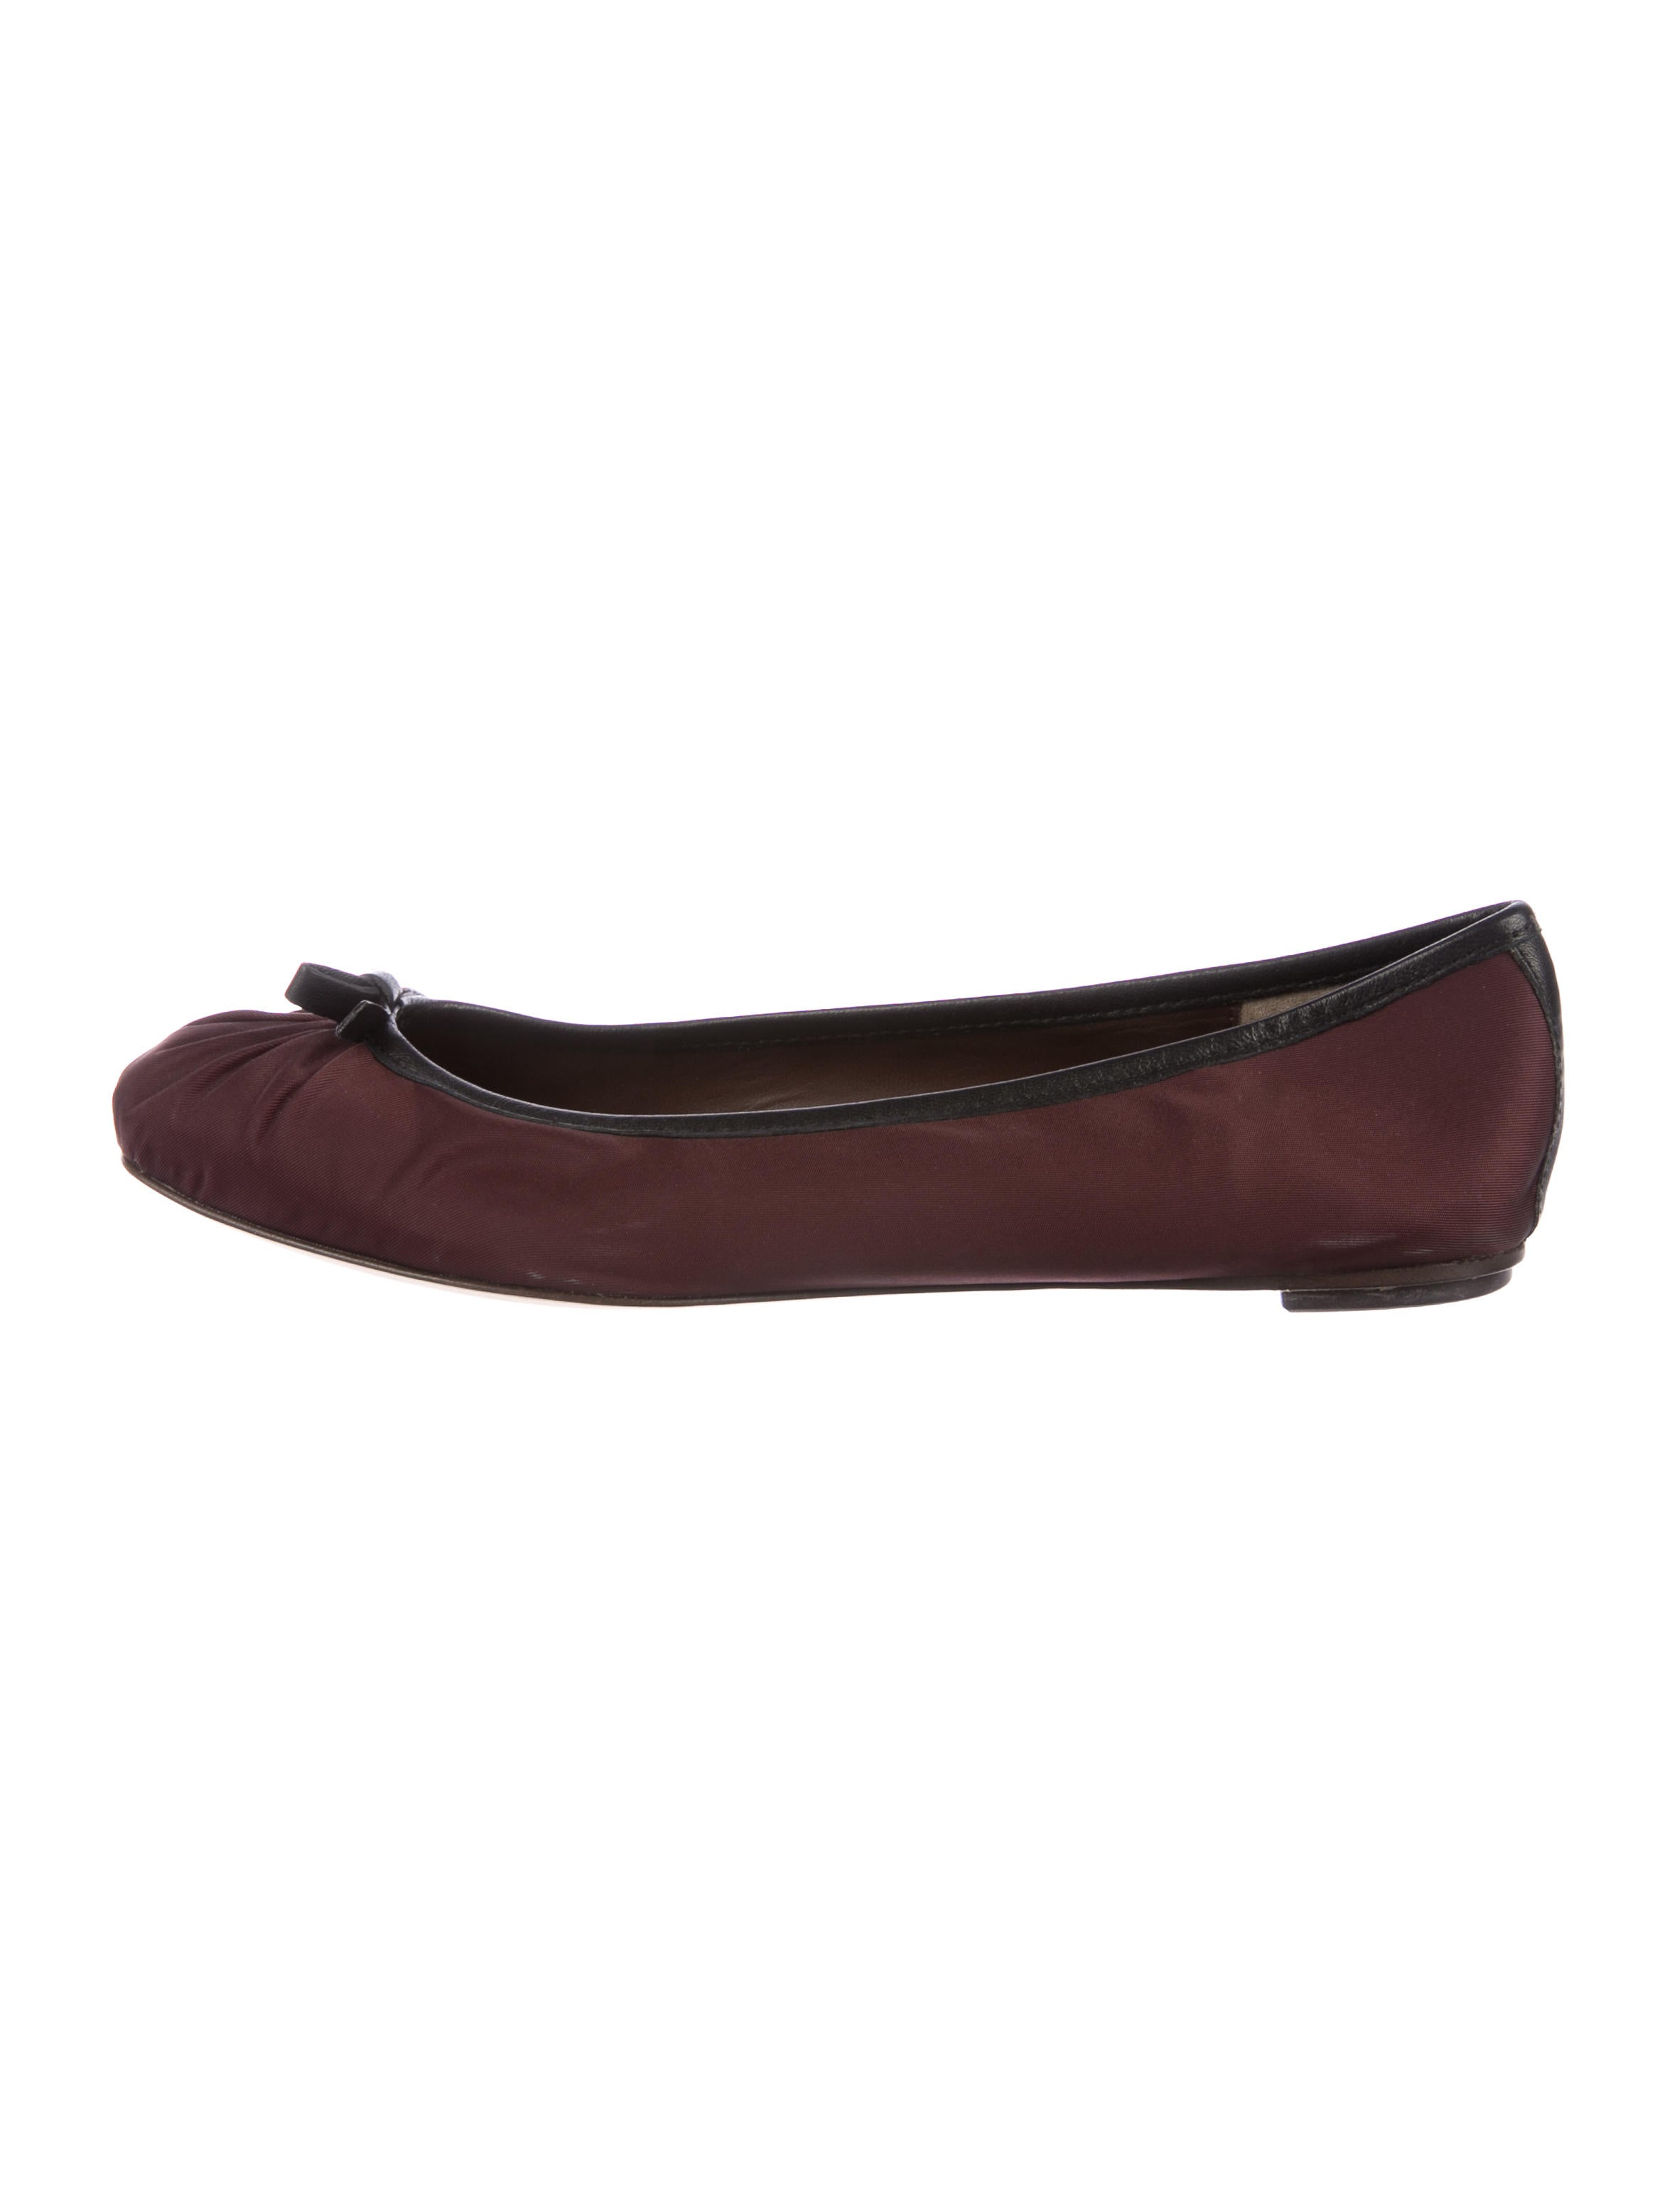 Bruno Magli Satin Square-Toe Flats